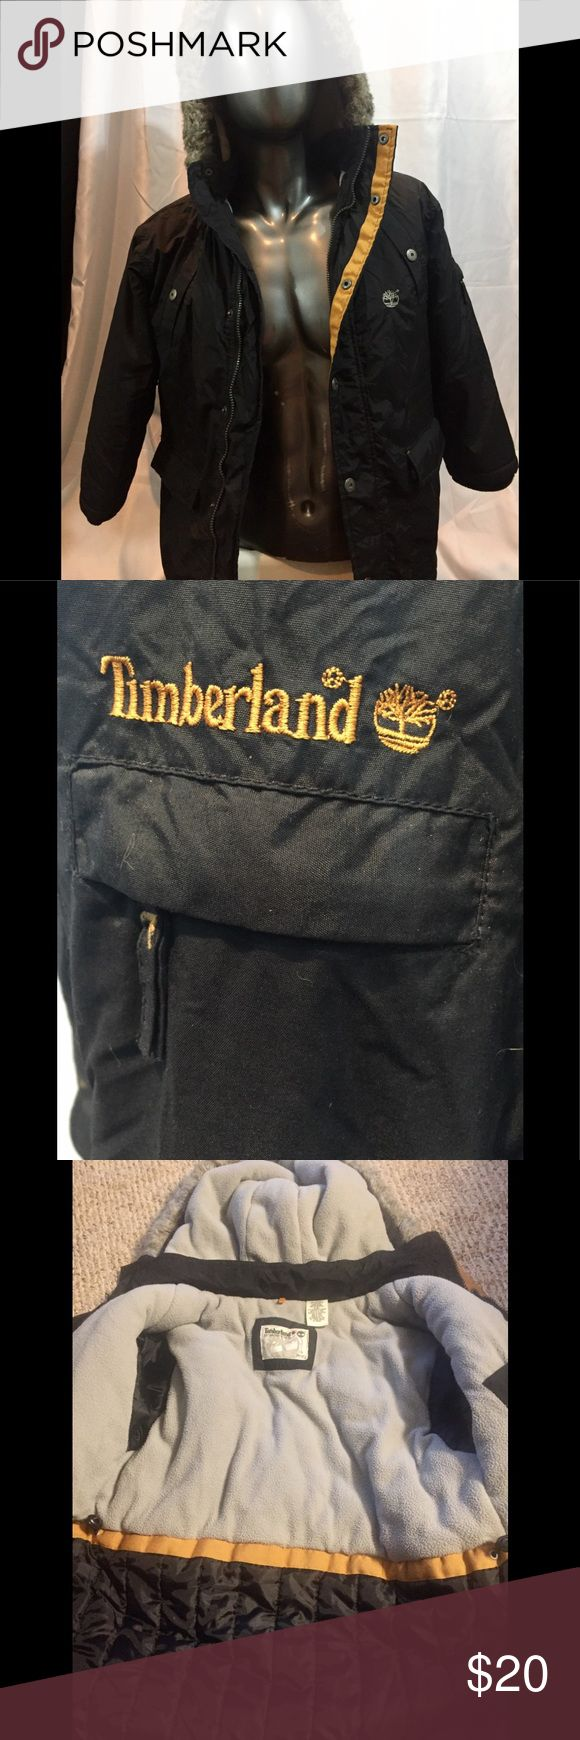 Extra warm winter coat by Timberland in size 8/10 Nice warm winter coat for boys size 8/10 by Timberland. Hoody is detachable. 2 zippered pockets up front and one with a push button. 1 zippered pocket on the sleeve. Knitted cuffs. Closes with zipper and push buttons. Inside covered with fleece. Has some wear . Timberland Jackets & Coats